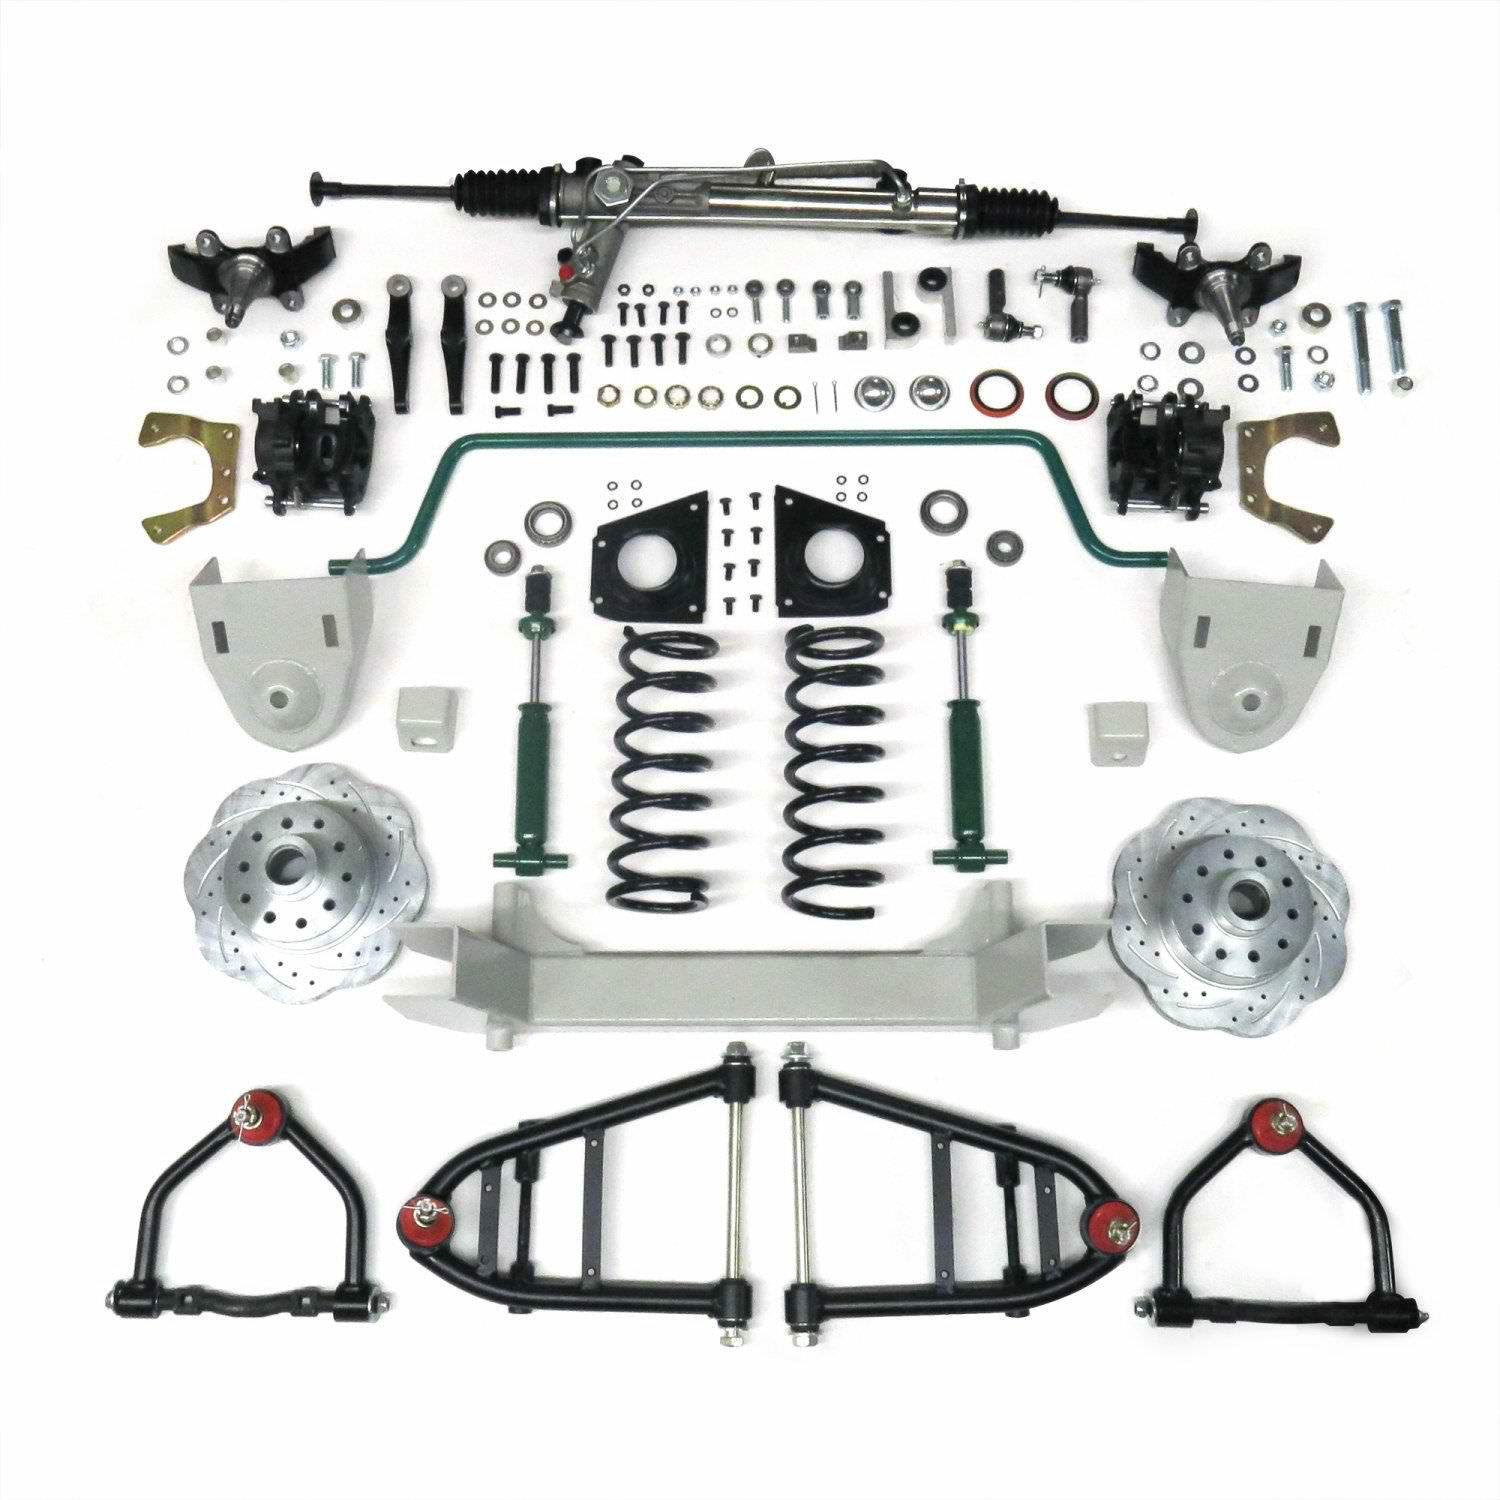 Mustang II IFS Suspension Kits